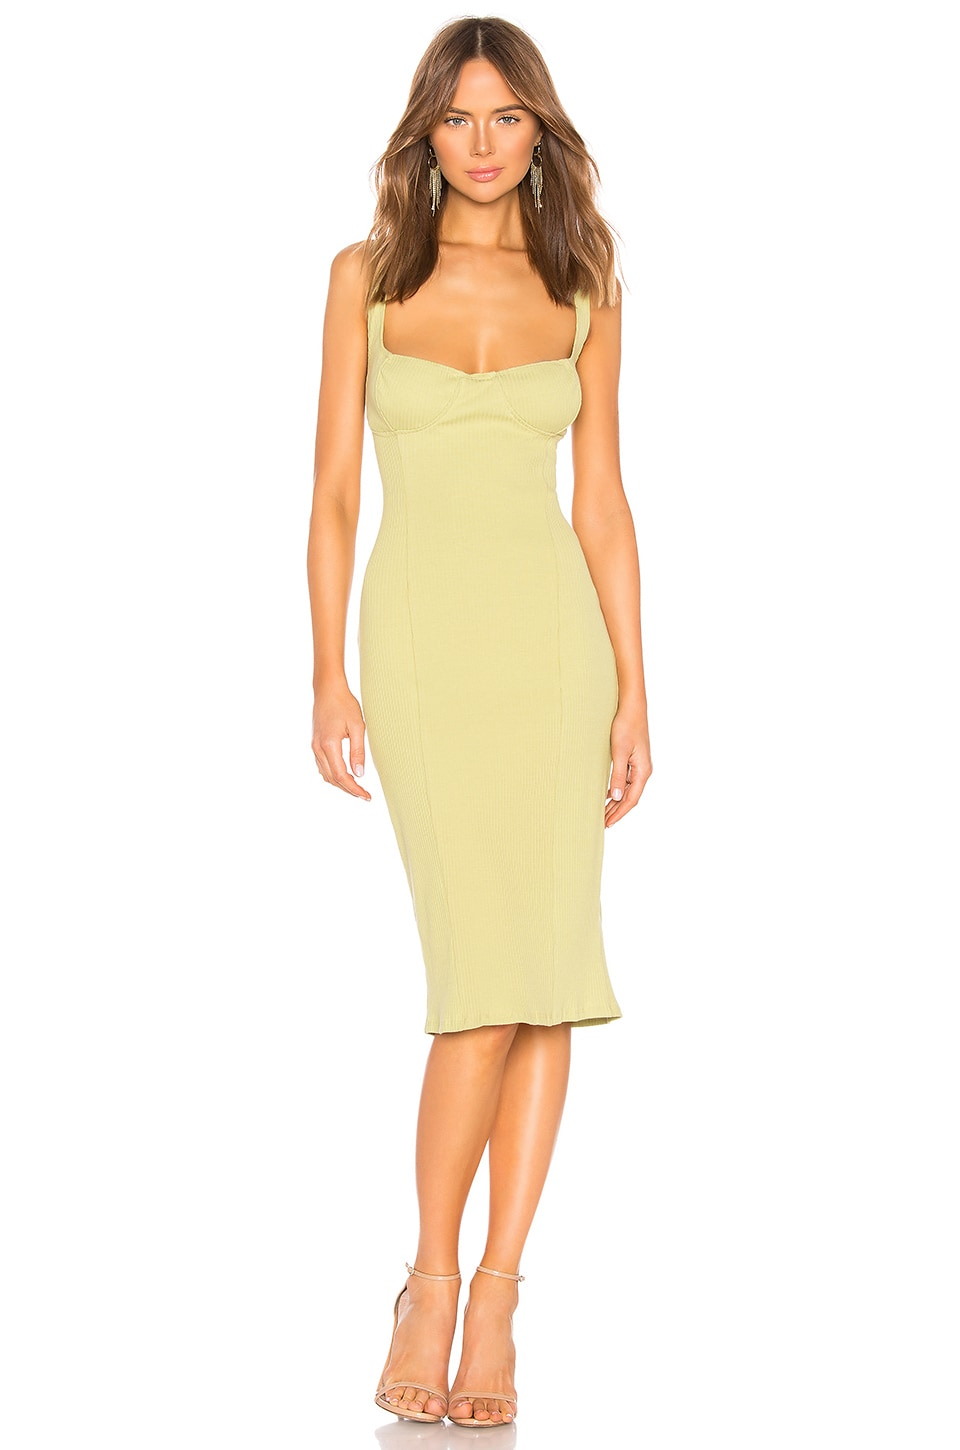 Capulet Lola Bustier Bodycon Dress in Pale Lime